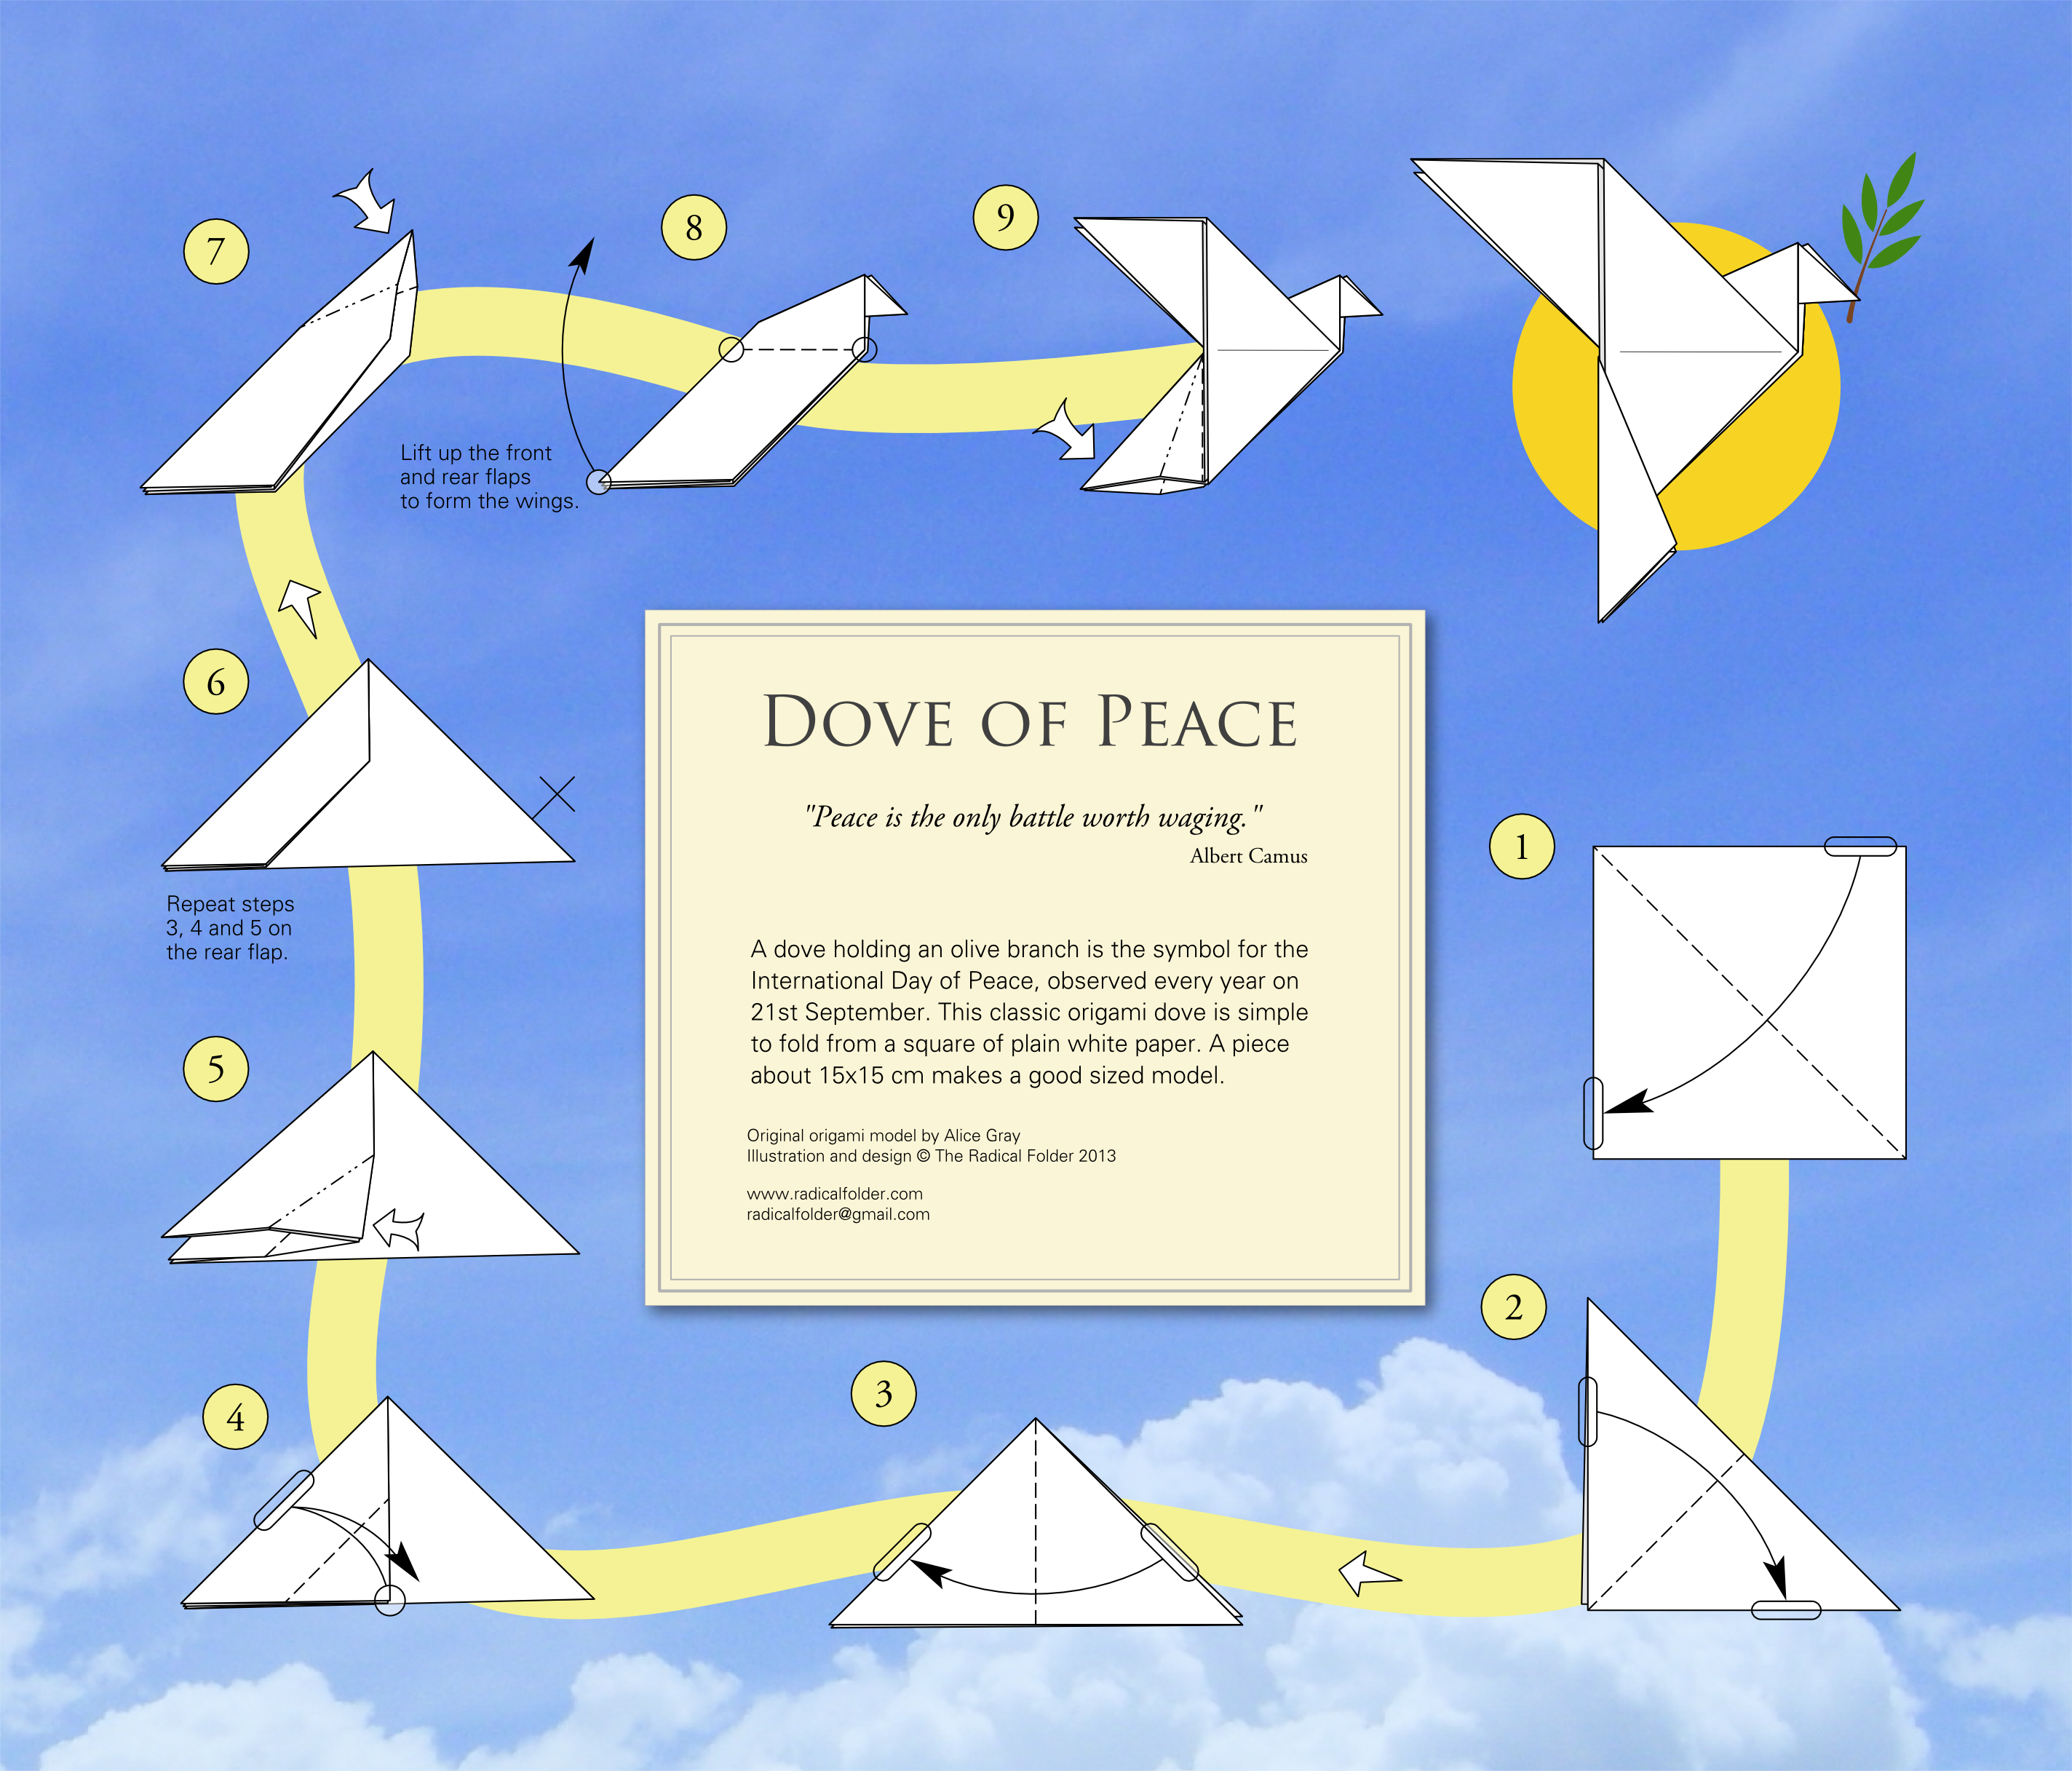 origami dove diagram 2004 impala exhaust system the radical folder paper folding with an edge cards